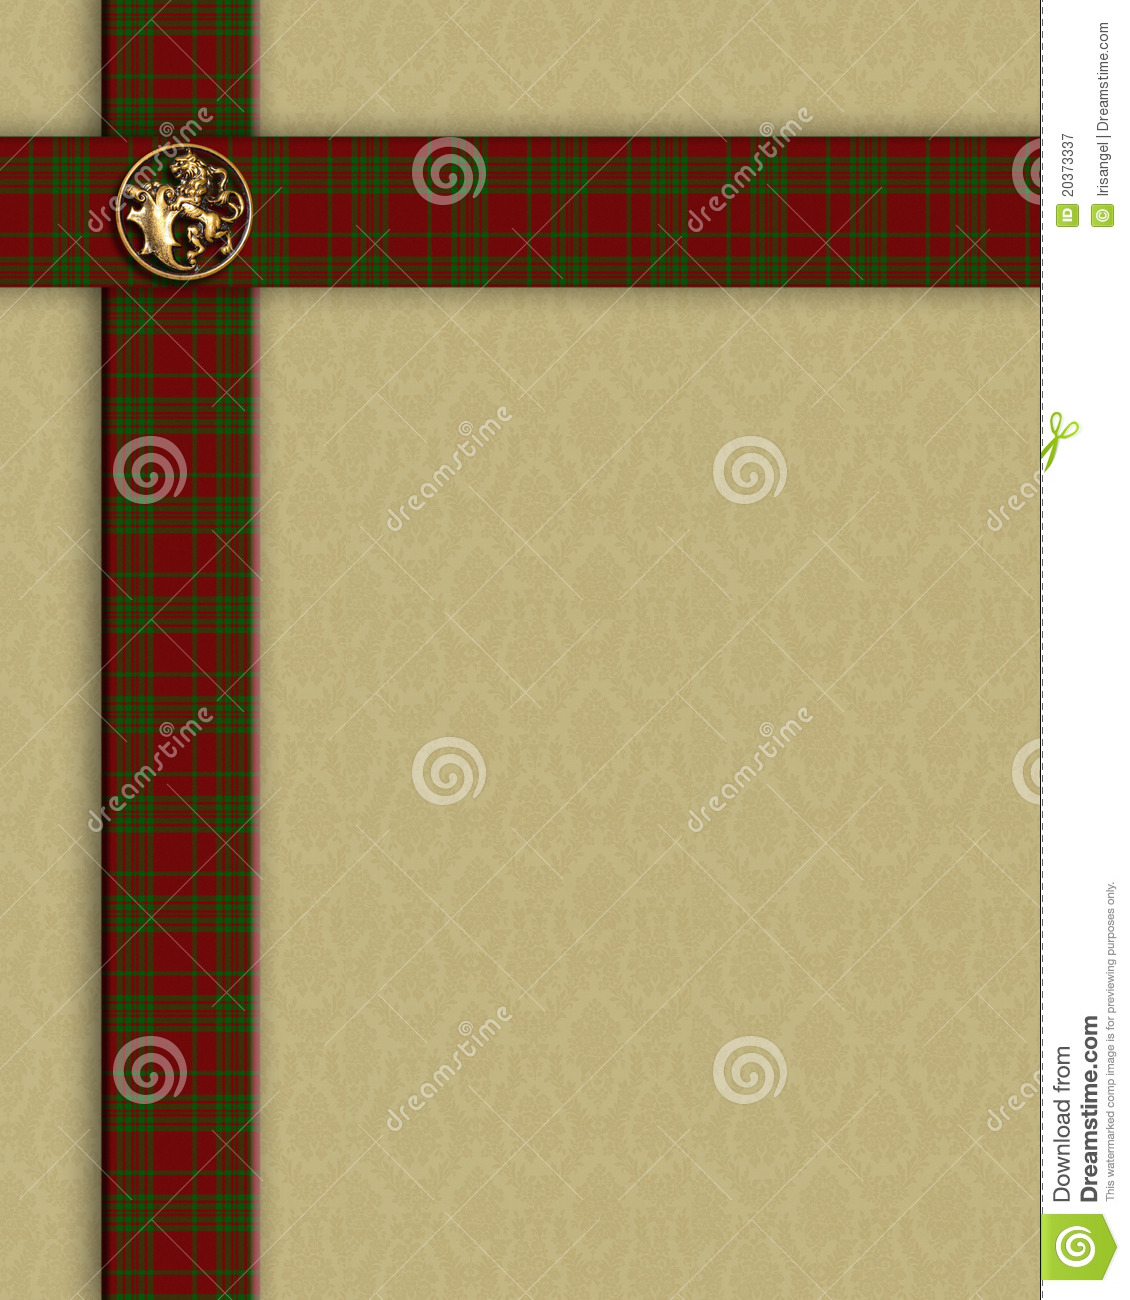 red plaid border template stock illustration  image of